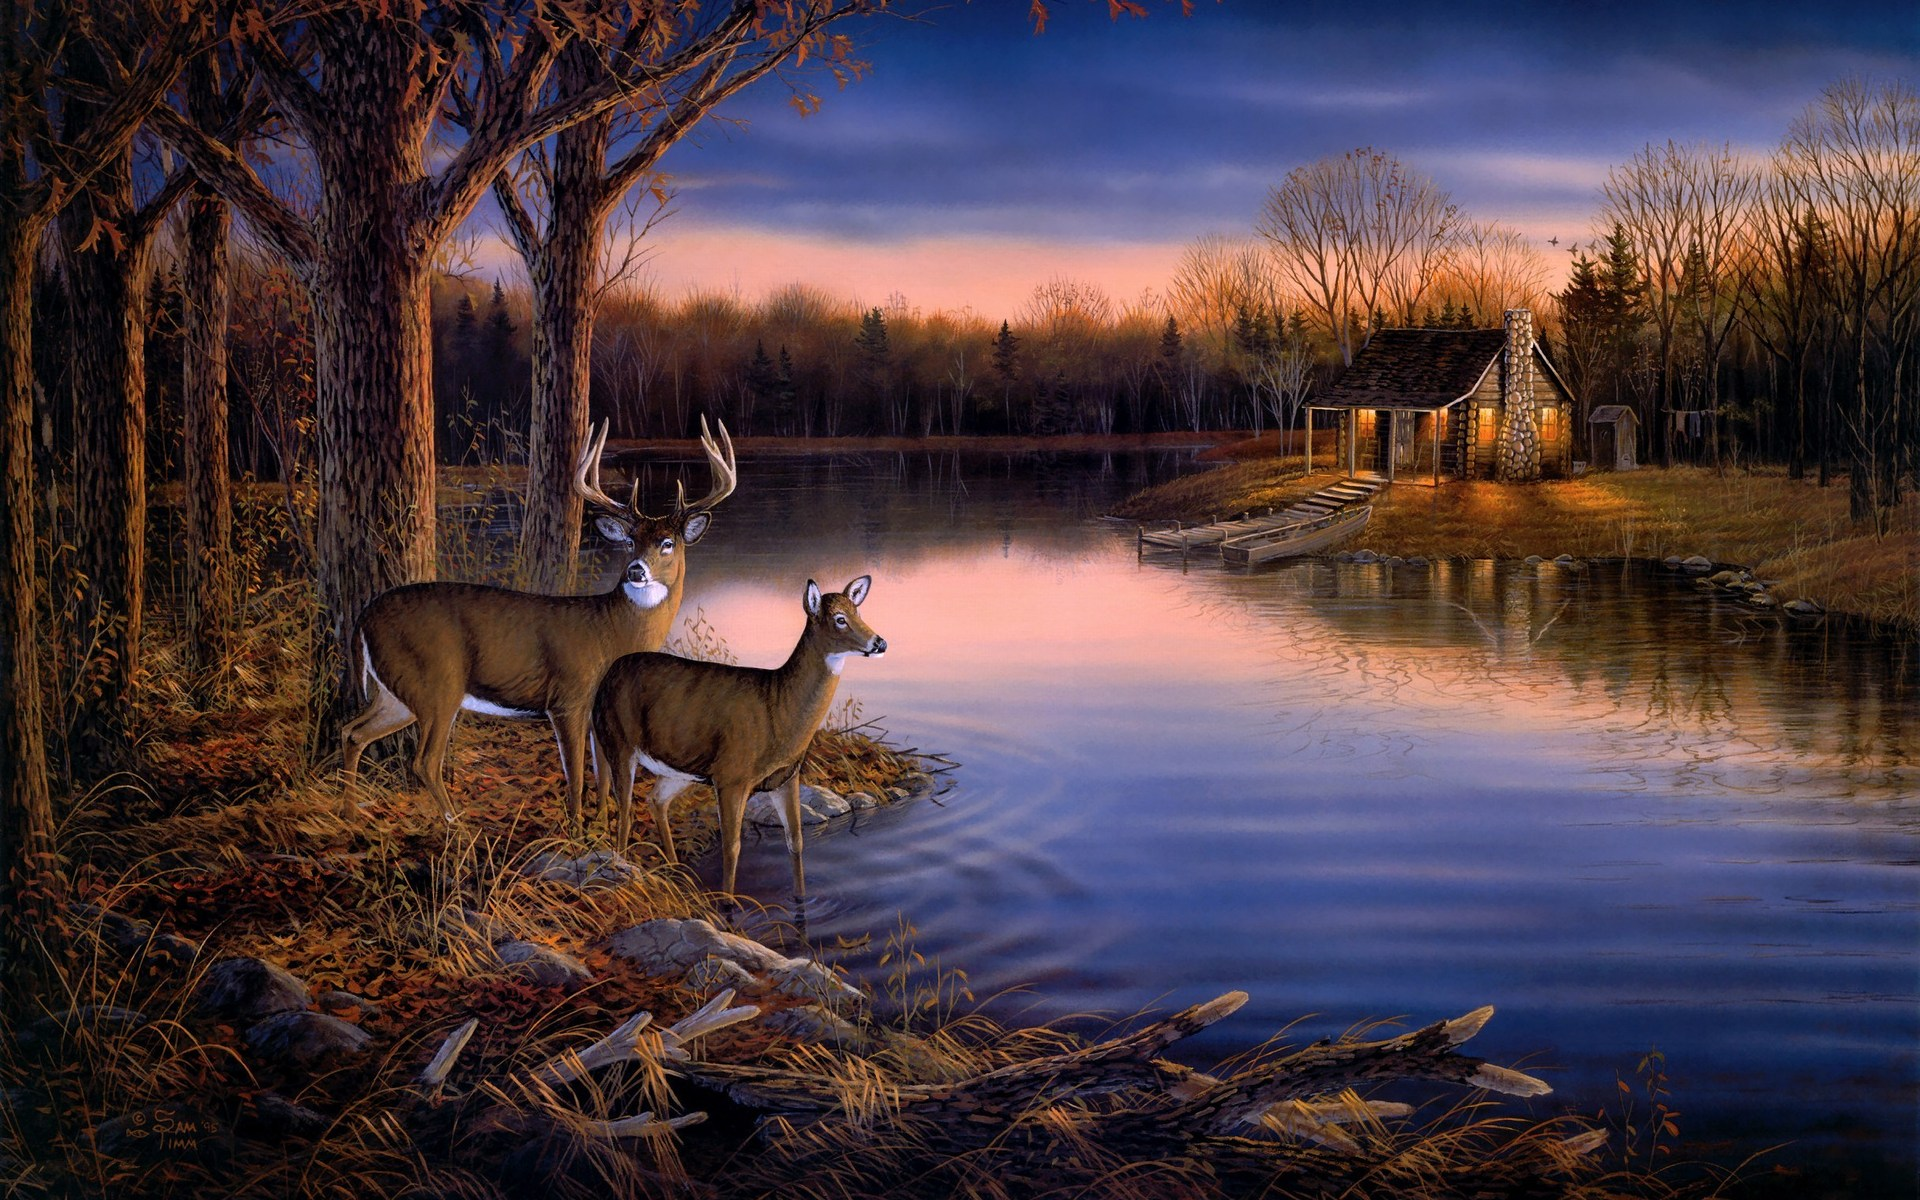 Deer lake evening wall mural wallpapers 1920x1200 630017 for Deer mural wallpaper